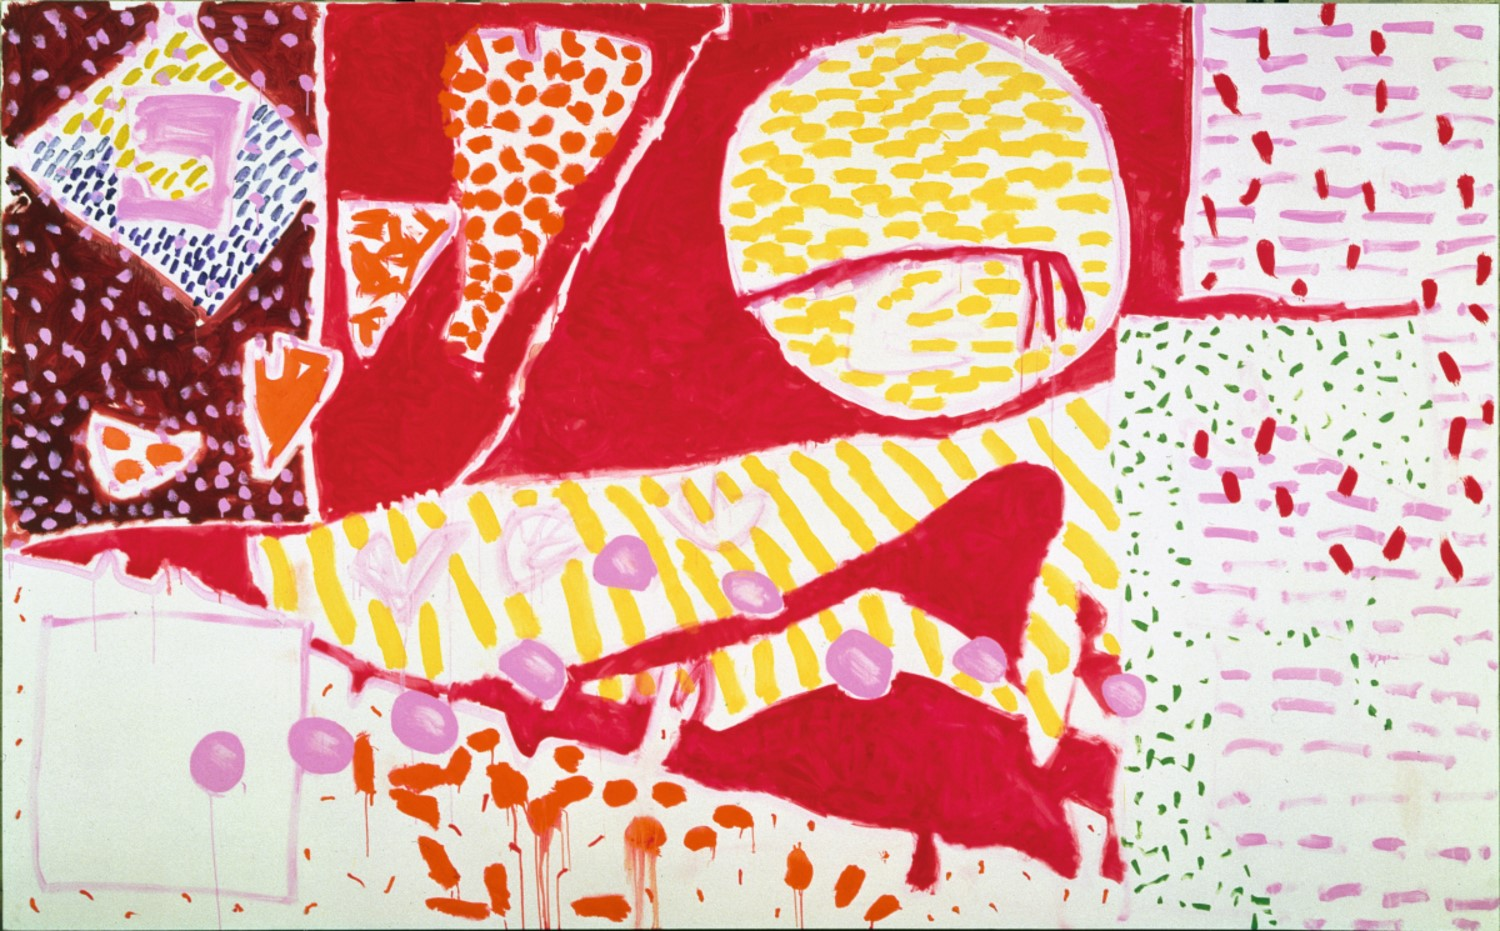 Patrick Heron, Red Garden Painting, June 3 – June 5 1985, oil paint on canvas (© Estate of Patrick Heron. All Rights Reserved, DACS 2018)